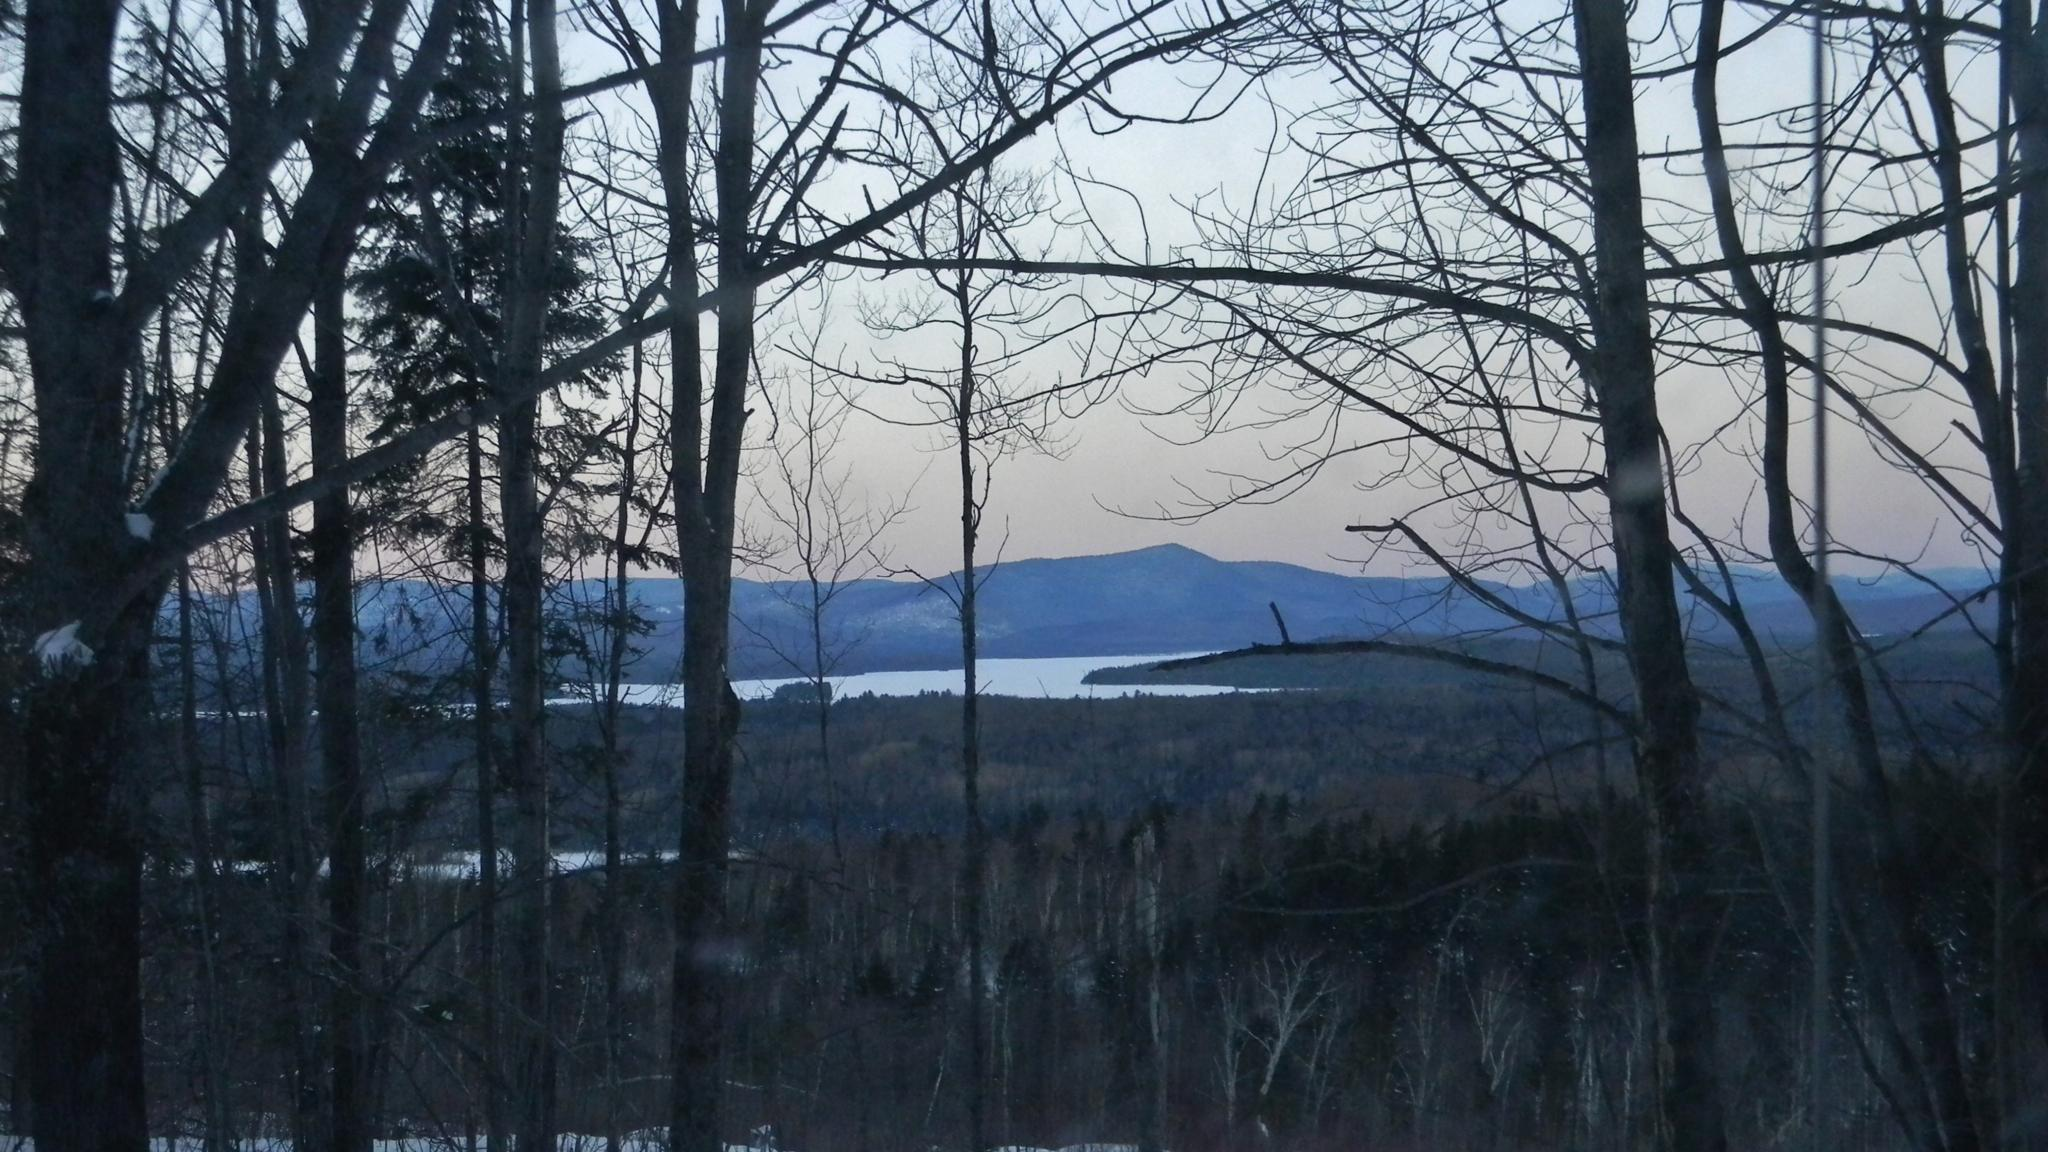 View of Mt. Dustan and Umbagog Lake from Upton, Maine by kbgarvey